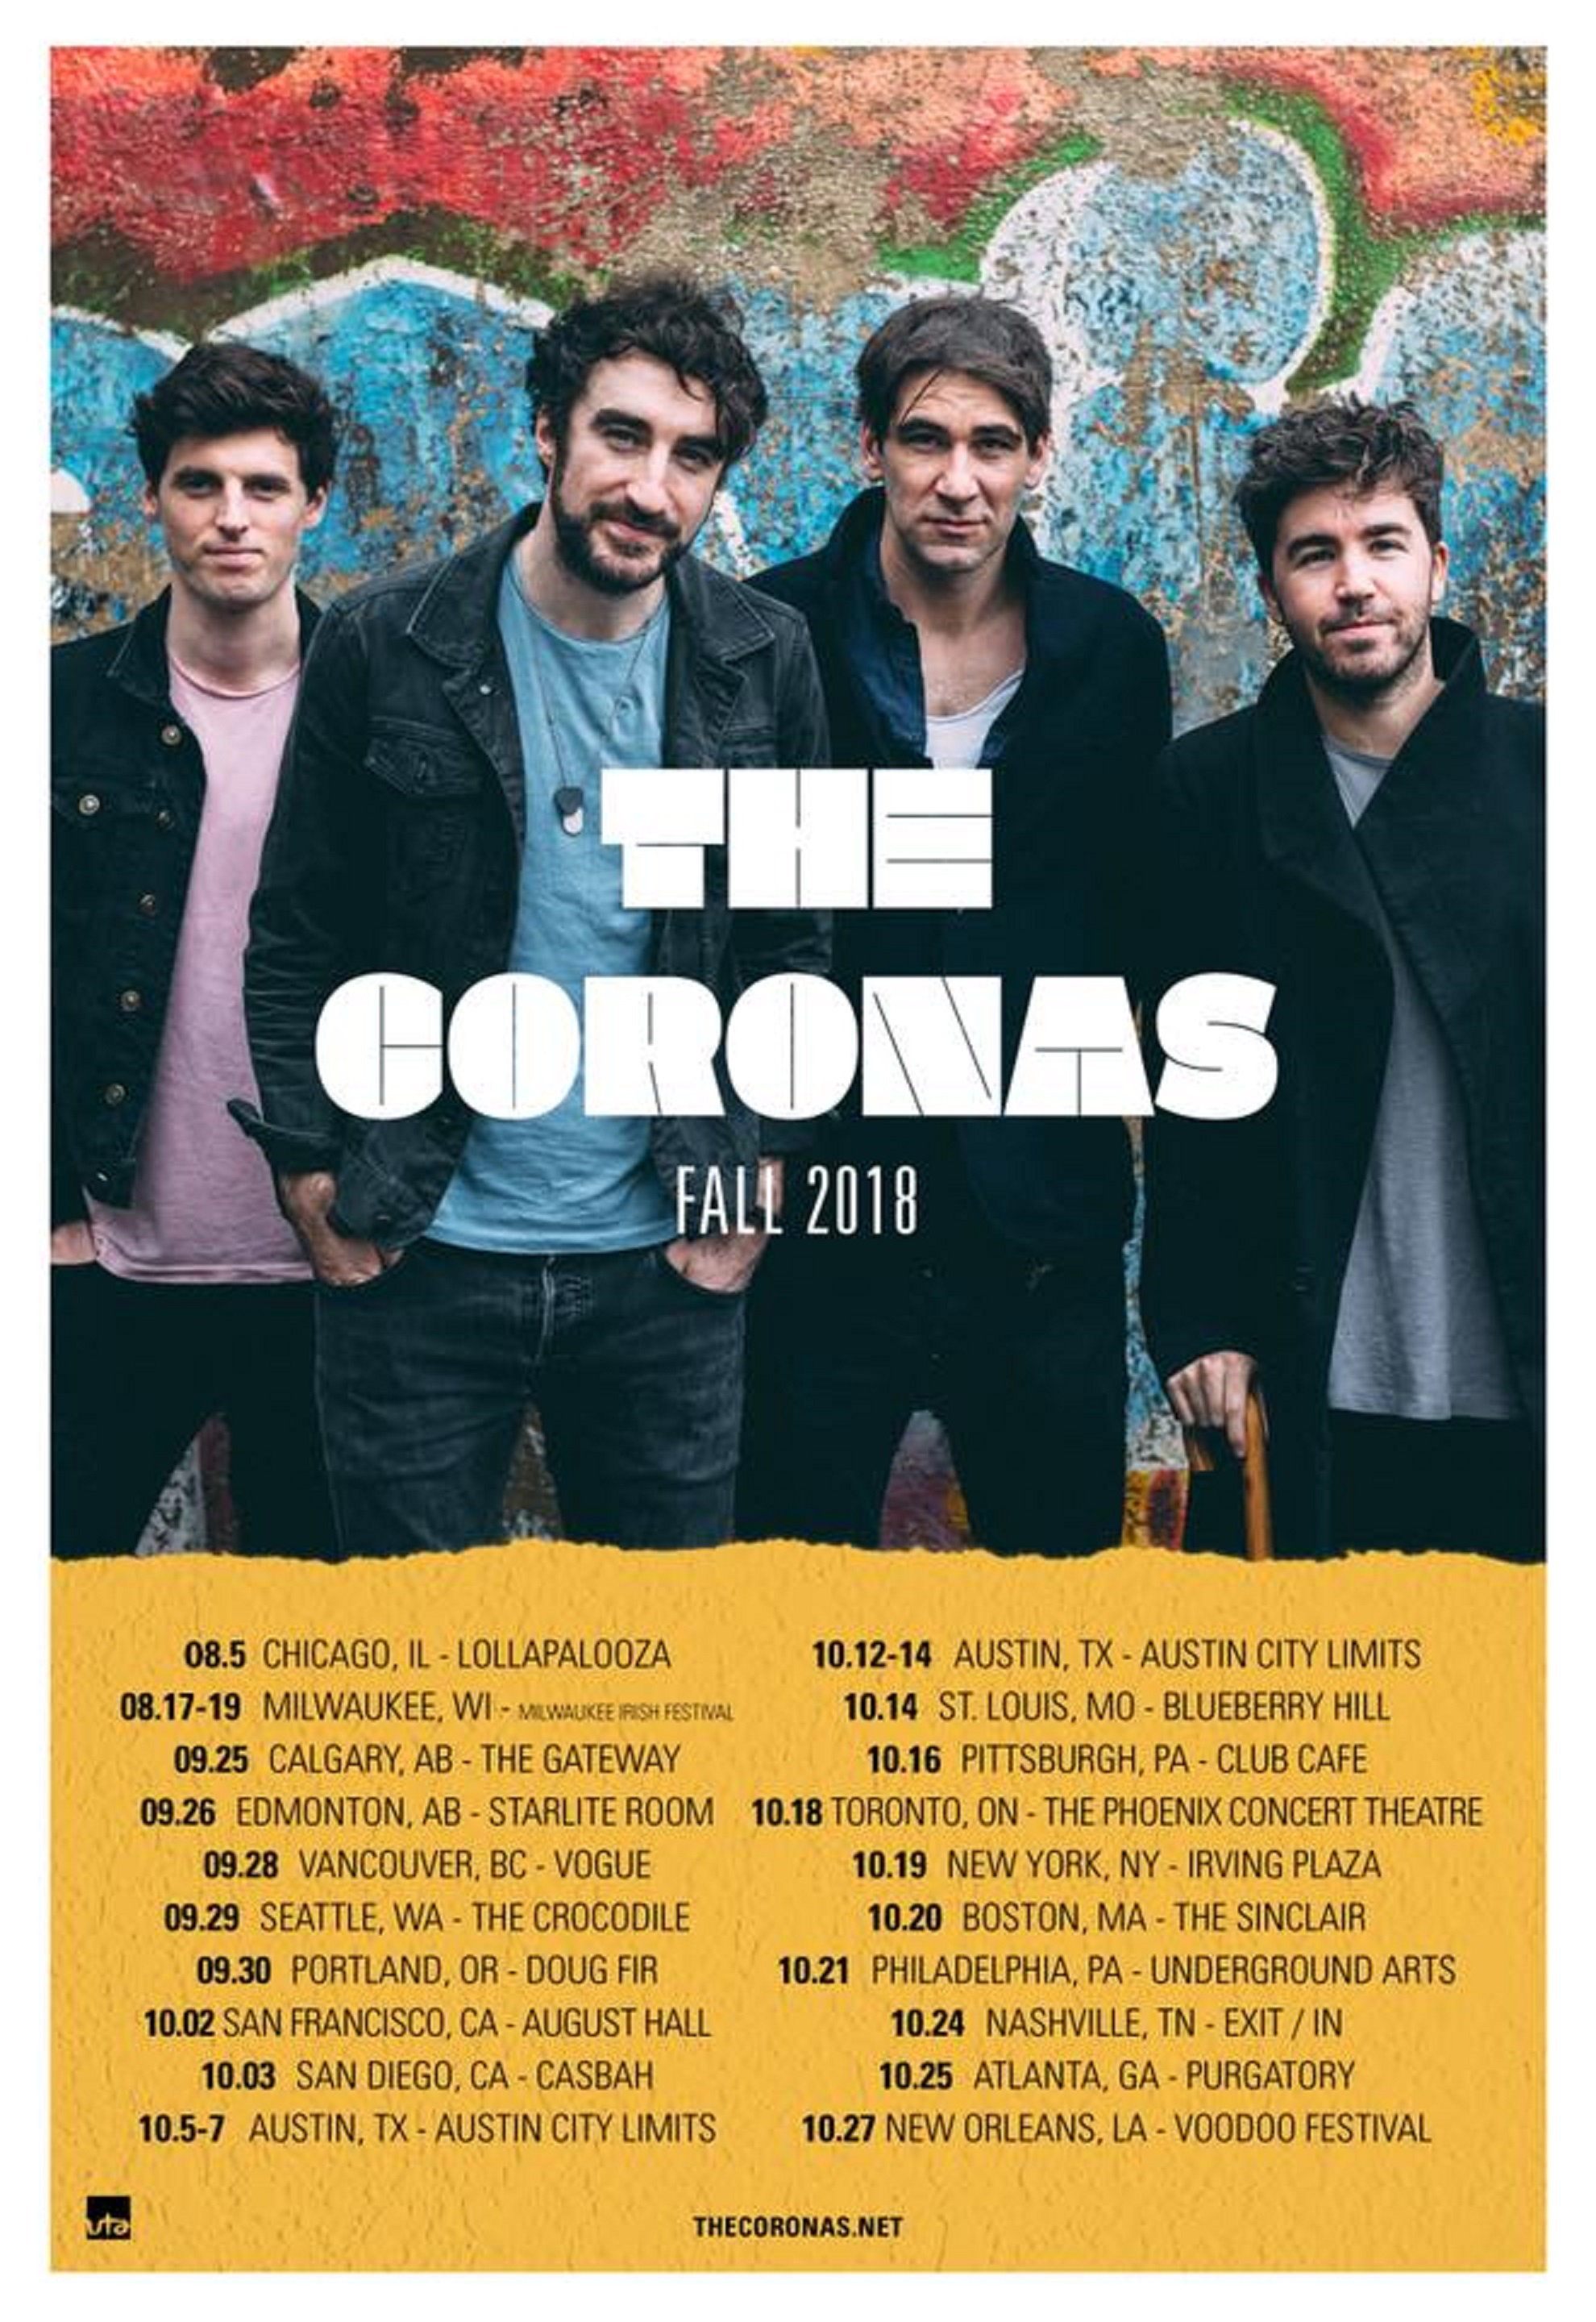 Coronas Kick Off North American Tour on Sunday at Lollapalooza